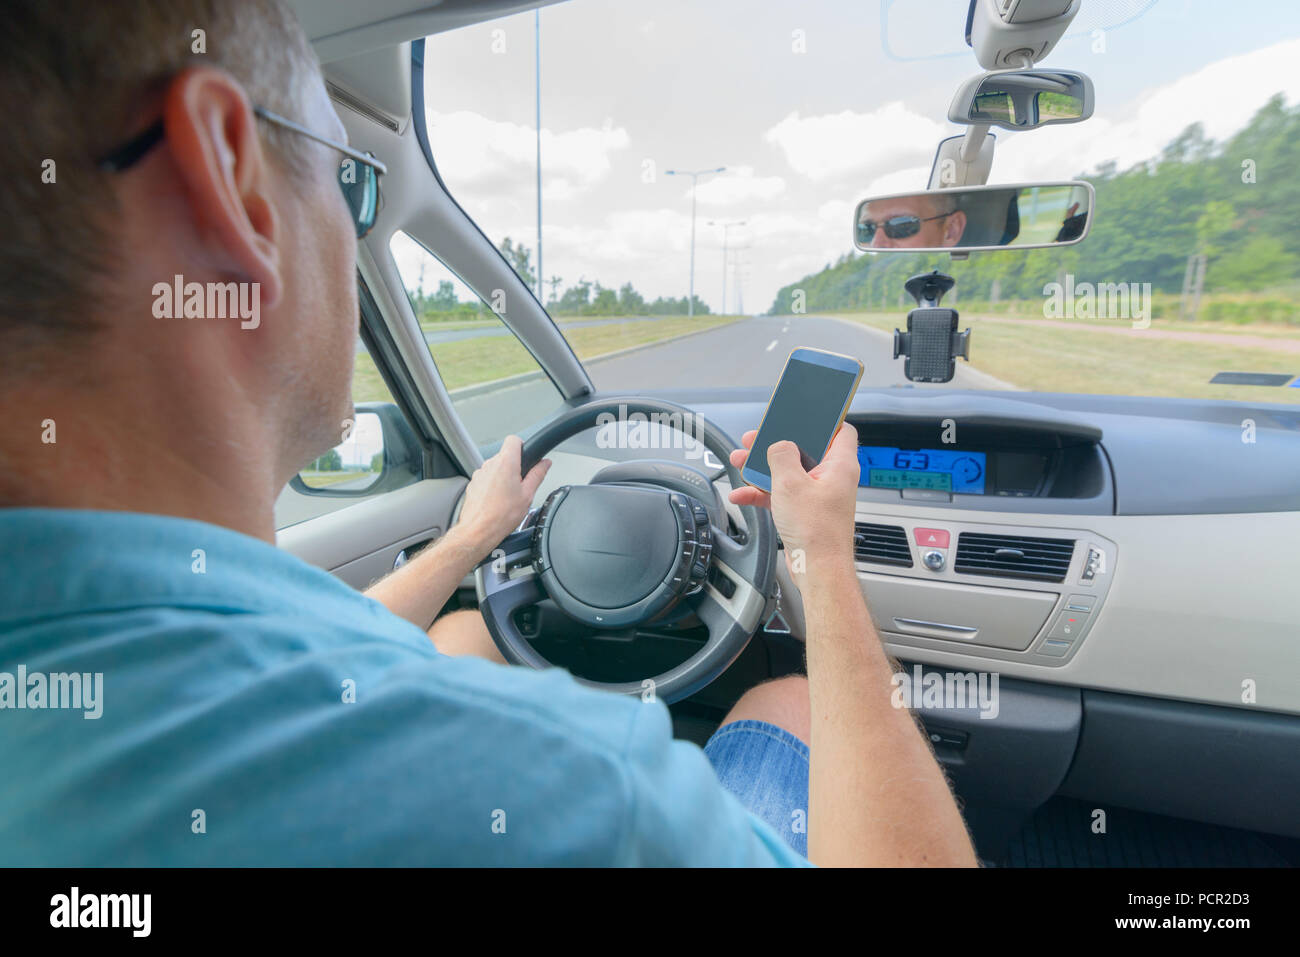 Man using phone while driving the car. Risky driving behaviors concept - Stock Image